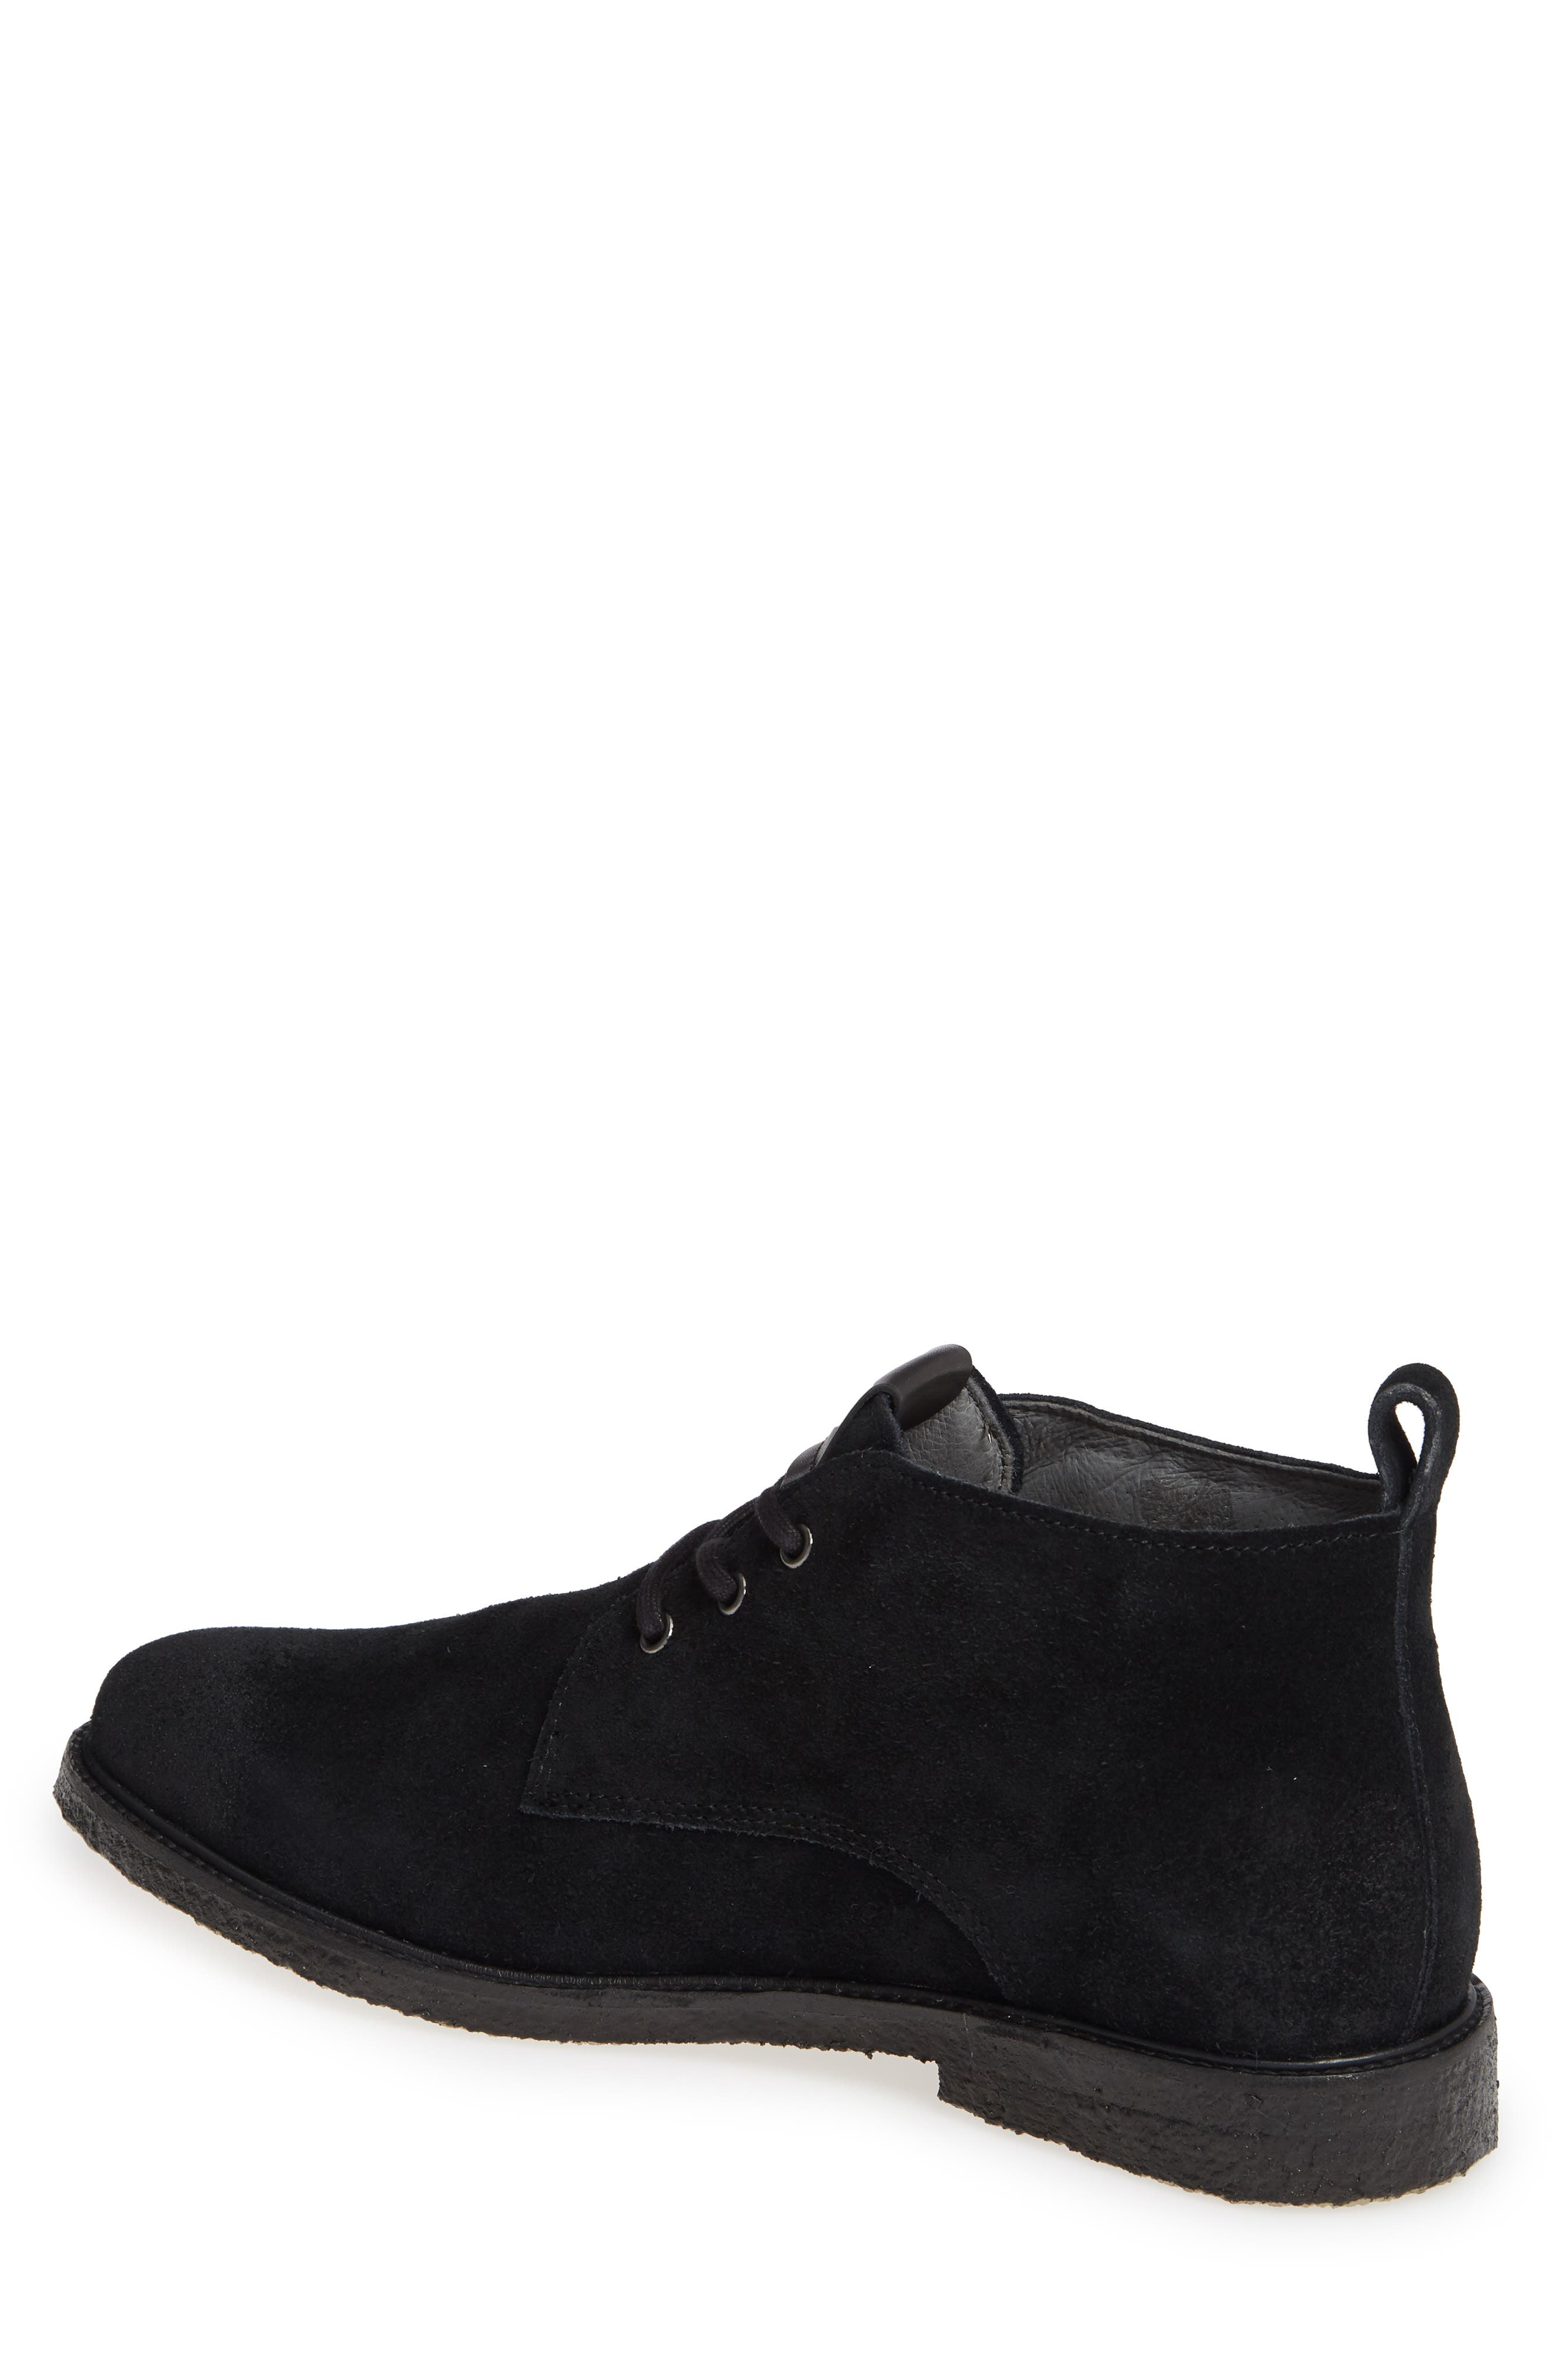 QM82 Chukka Boot,                             Alternate thumbnail 2, color,                             BLACK